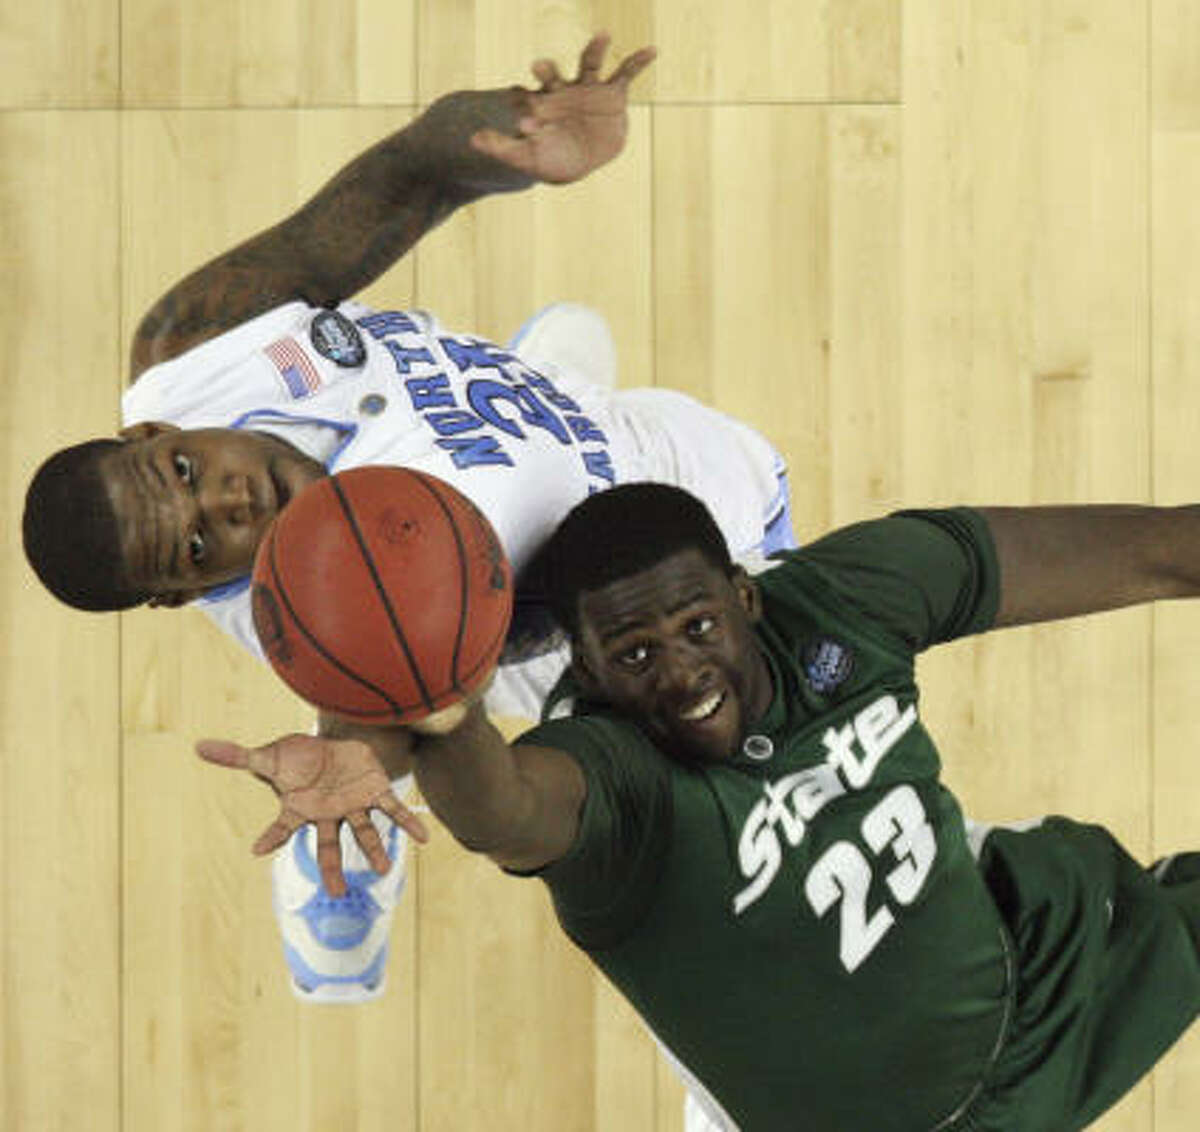 North Carolina's Deon Thompson (21) and Michigan State's Draymond Green (23) go for a rebound.